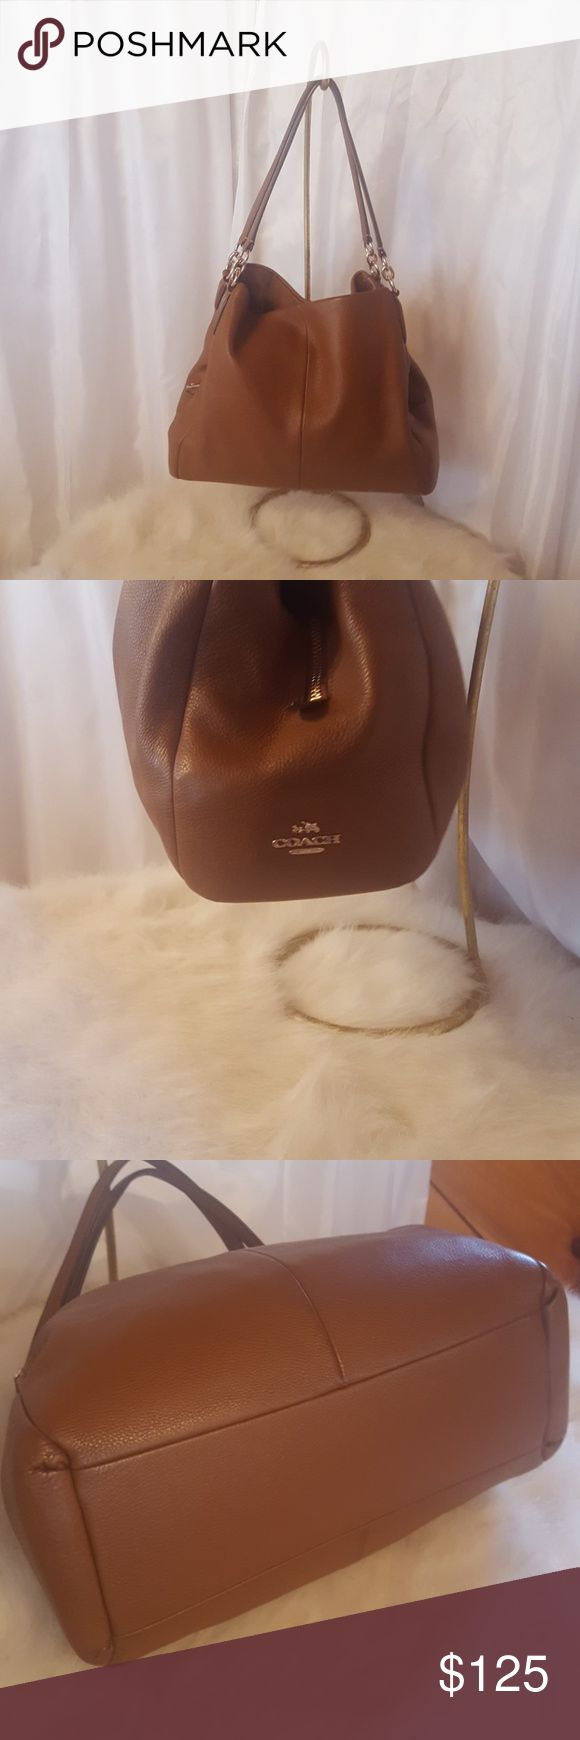 Amazing Coach bag! Coach shoulder bag in great neutral color for year round use. Pebbles leather.  Tons on storage and compartments. Excellent condition! Coach Bags Shoulder Bags